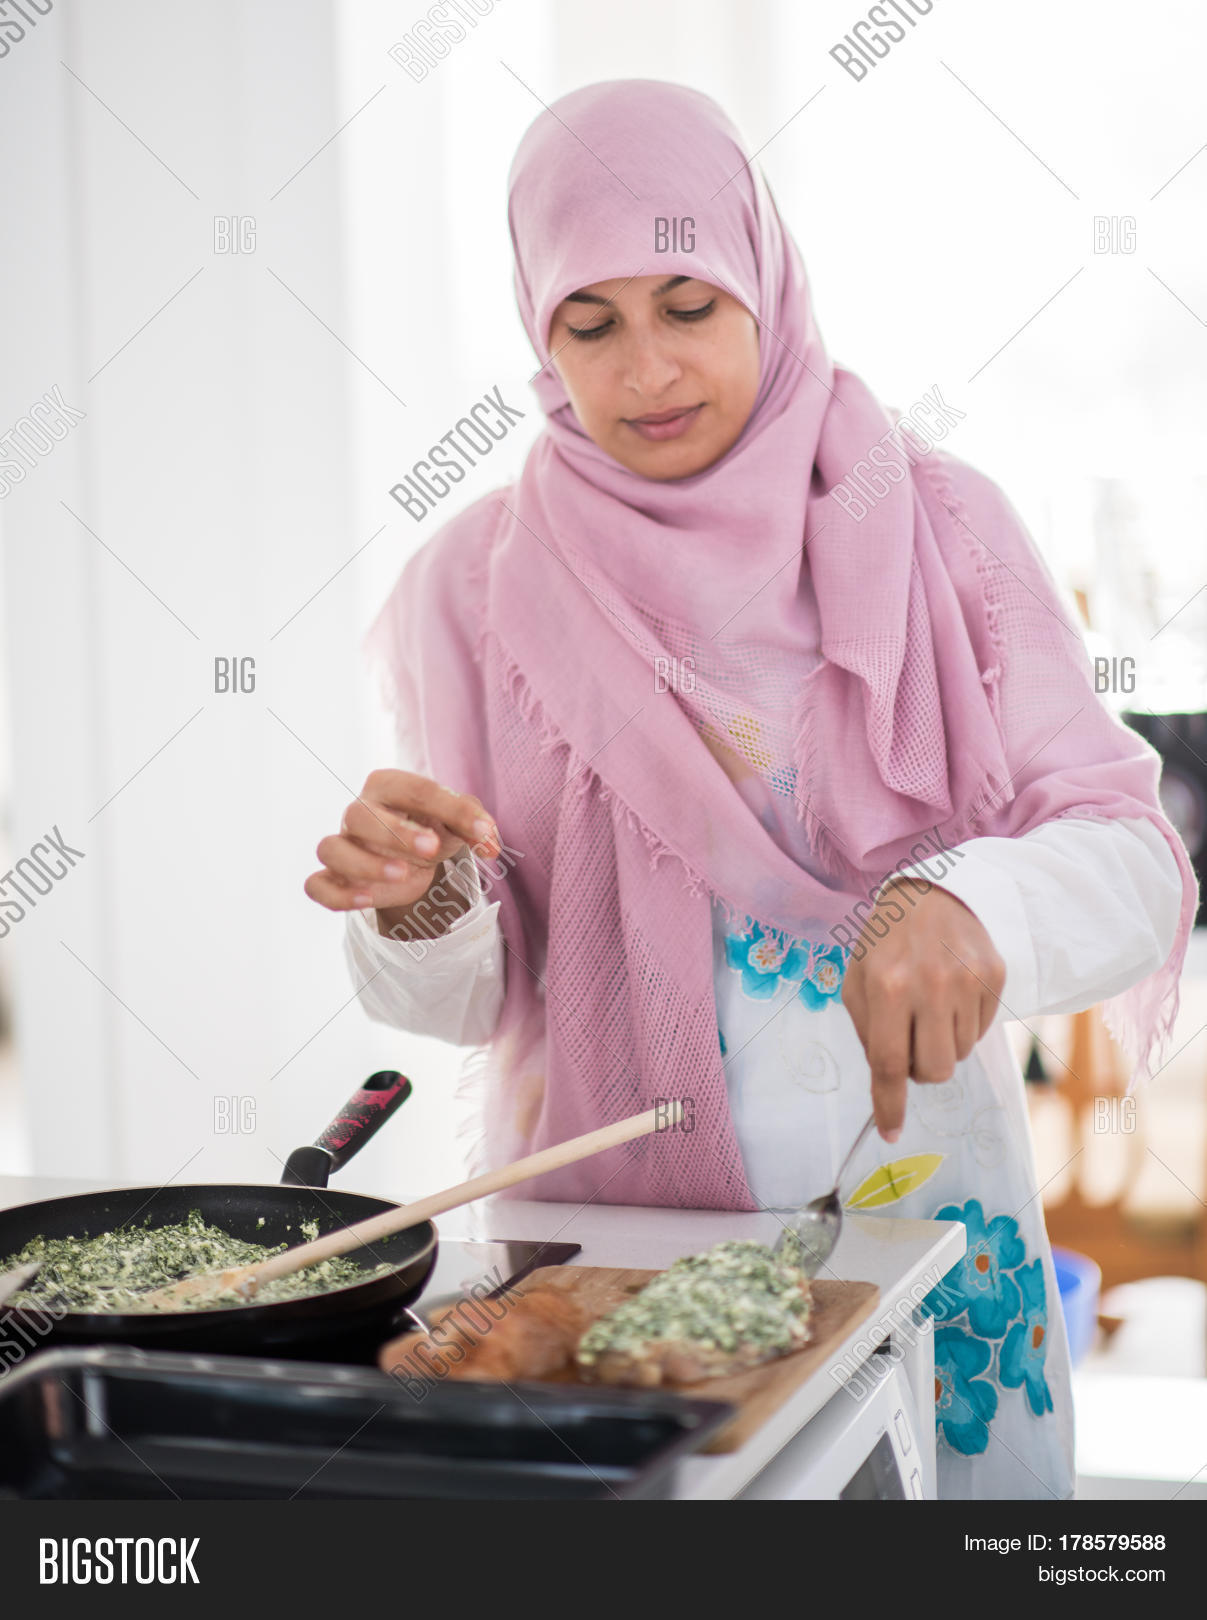 big creek single muslim girls A single man in dubai: dating dos and dont's single people with money to spend and free time to fill in dubai hospitality is big business here.